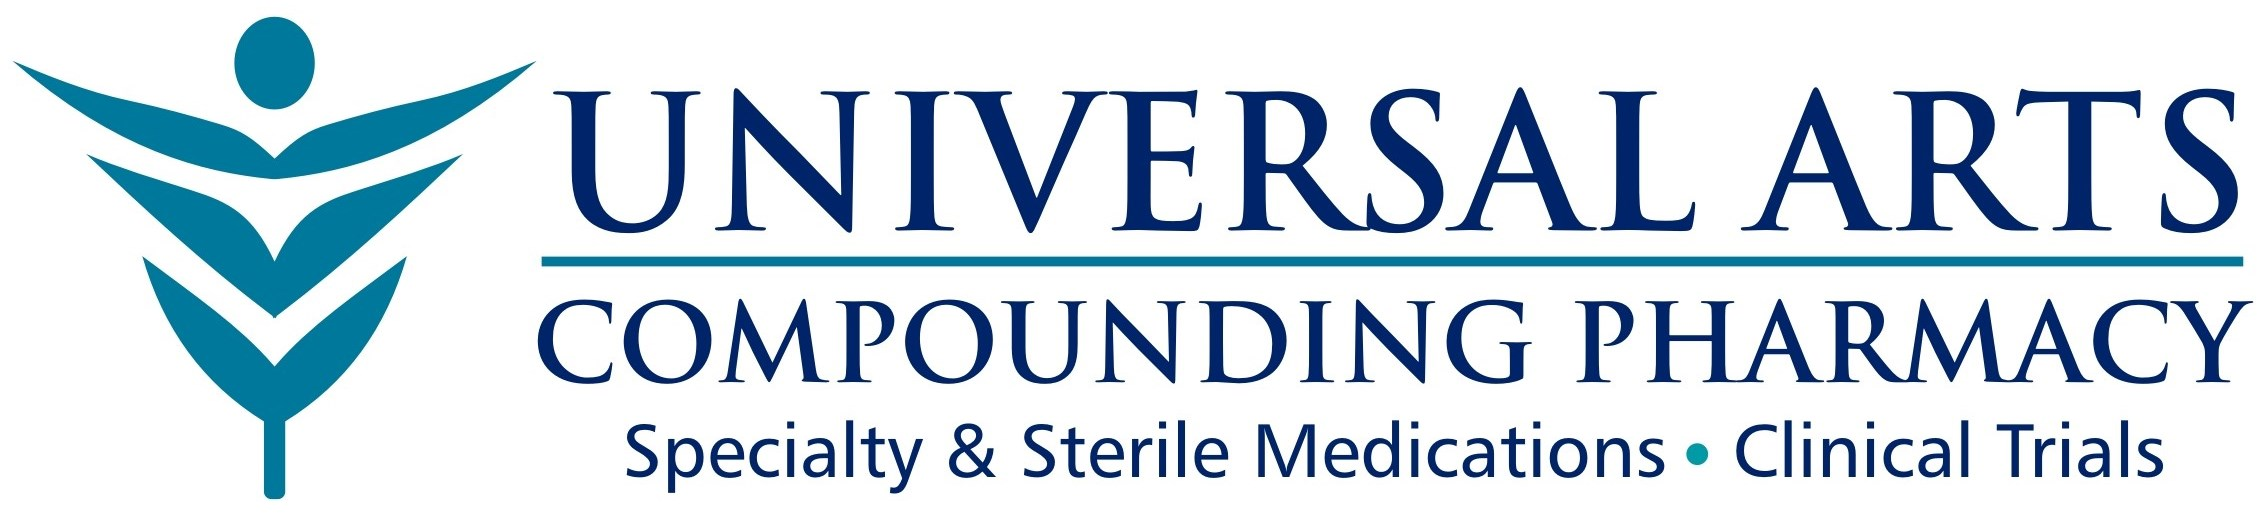 Universal Arts Compounding Pharmacy